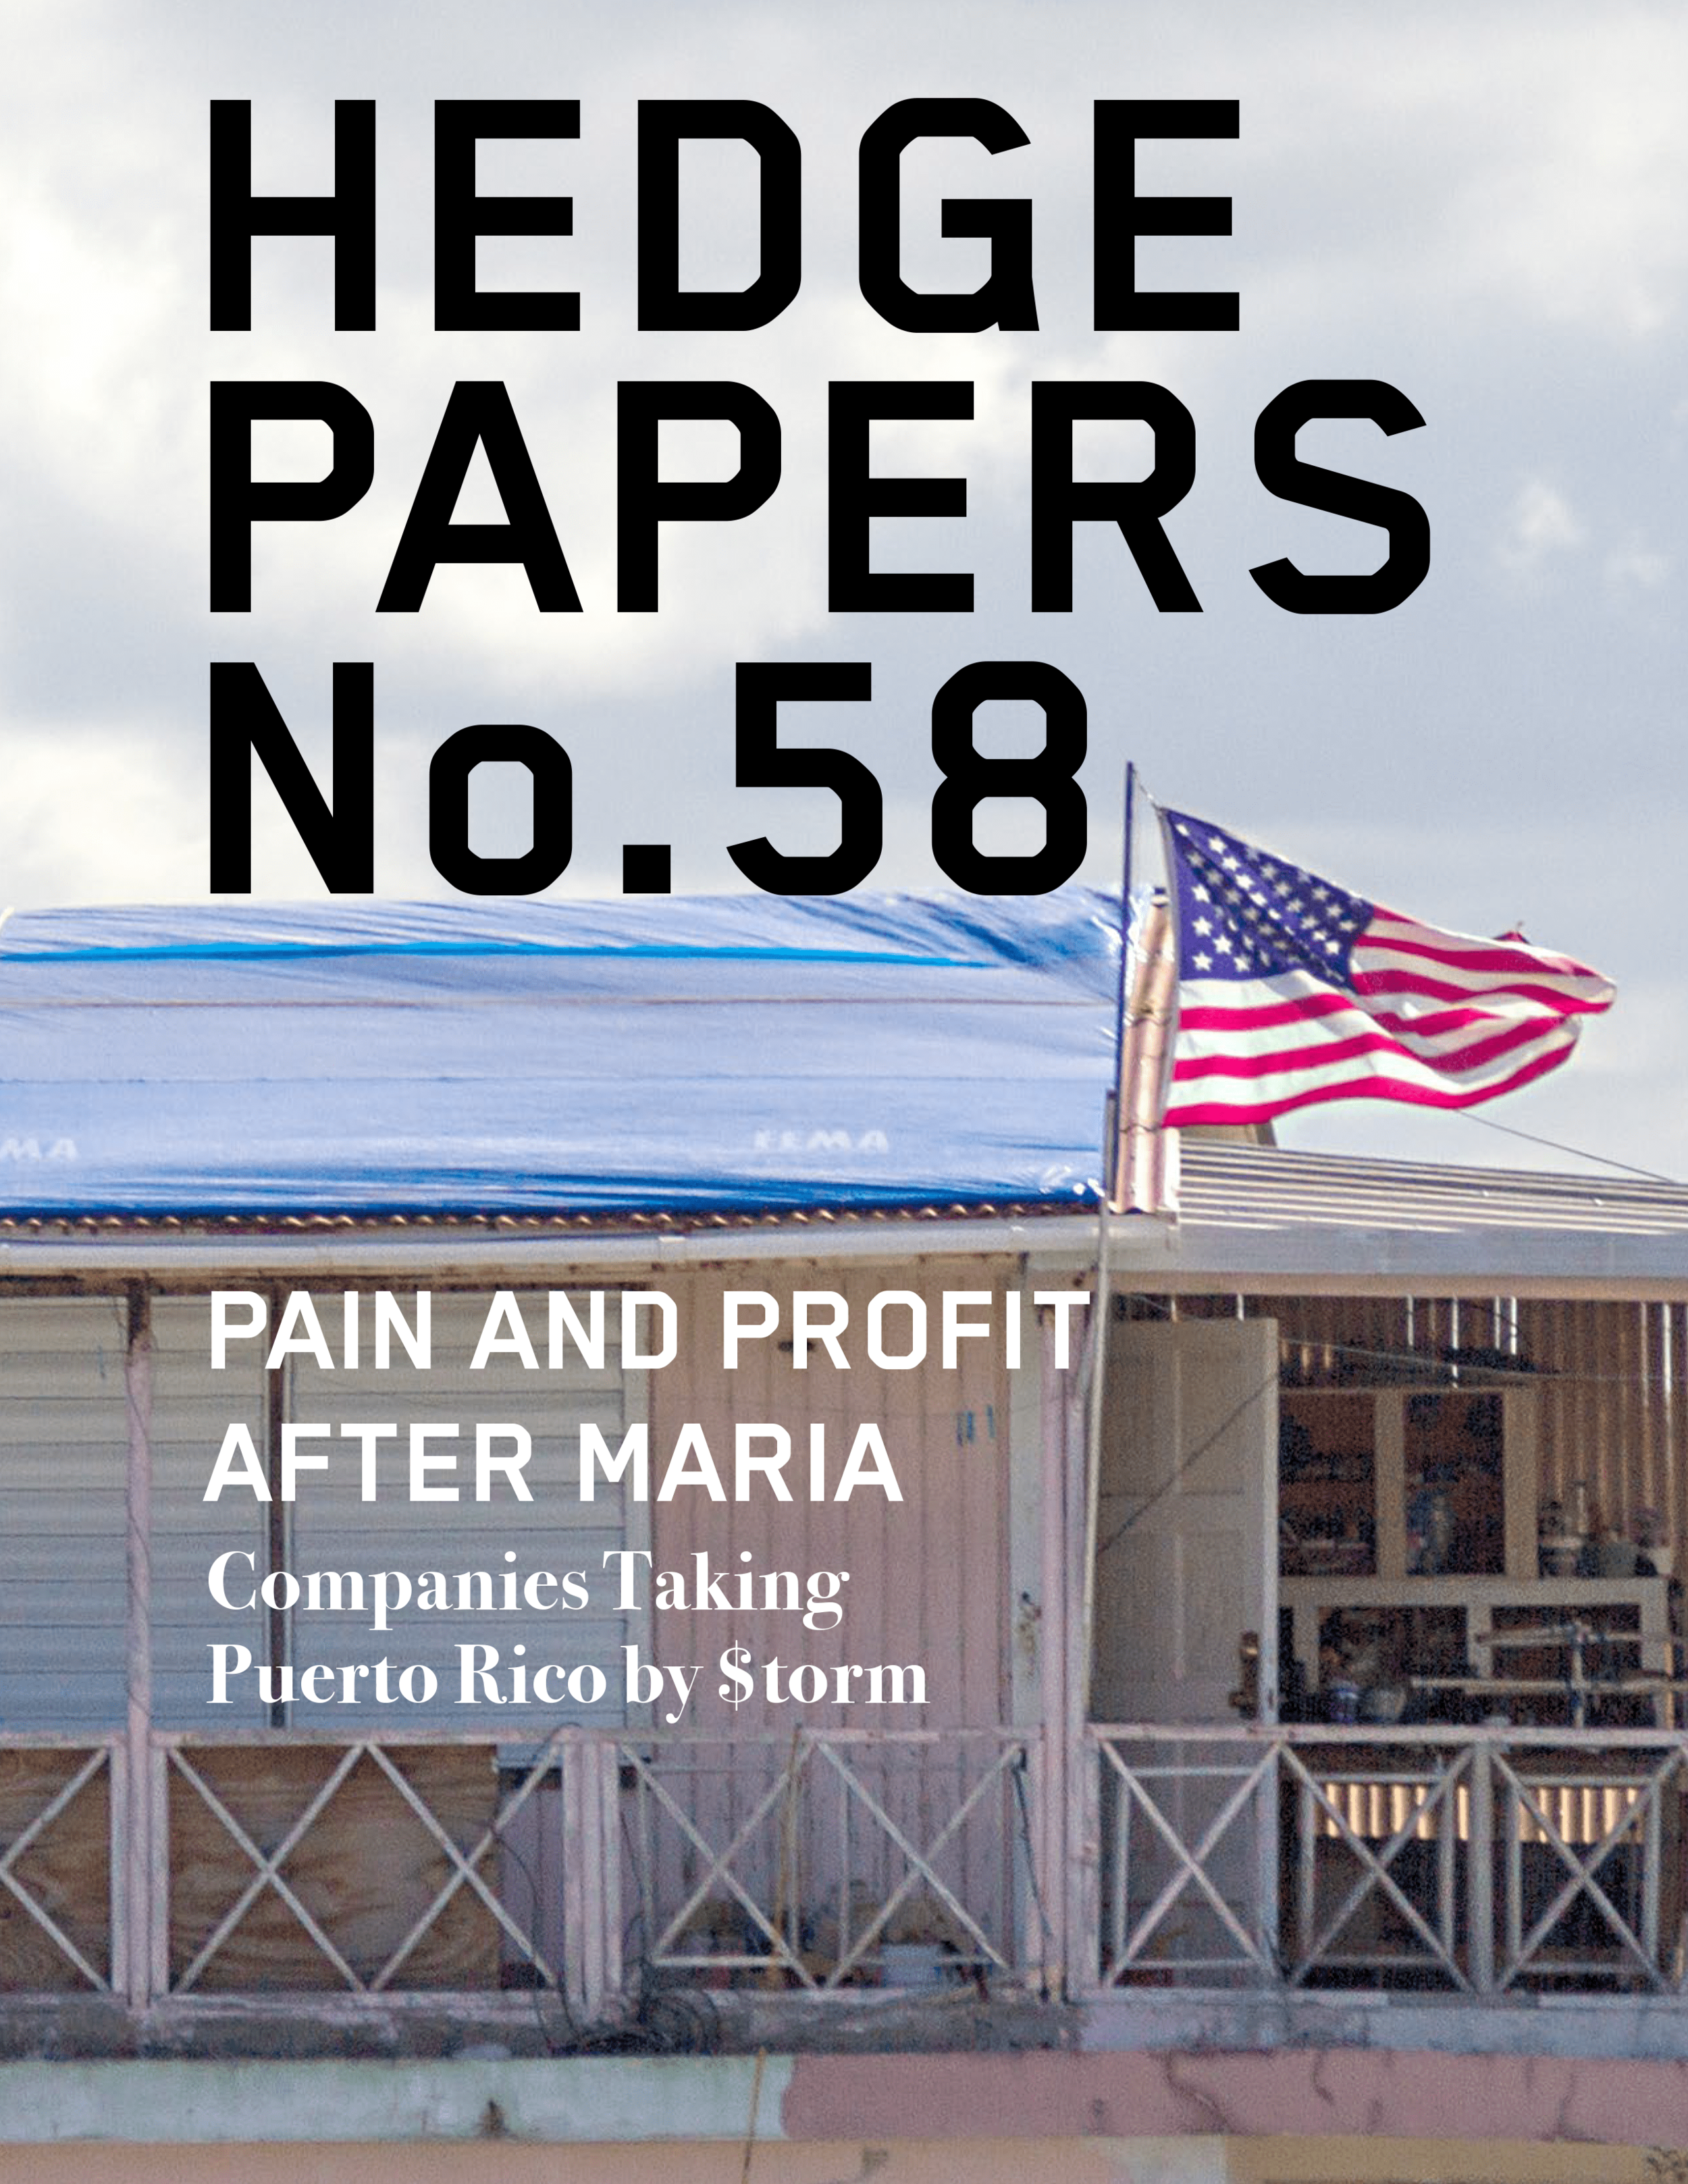 Pain and Profit After Maria